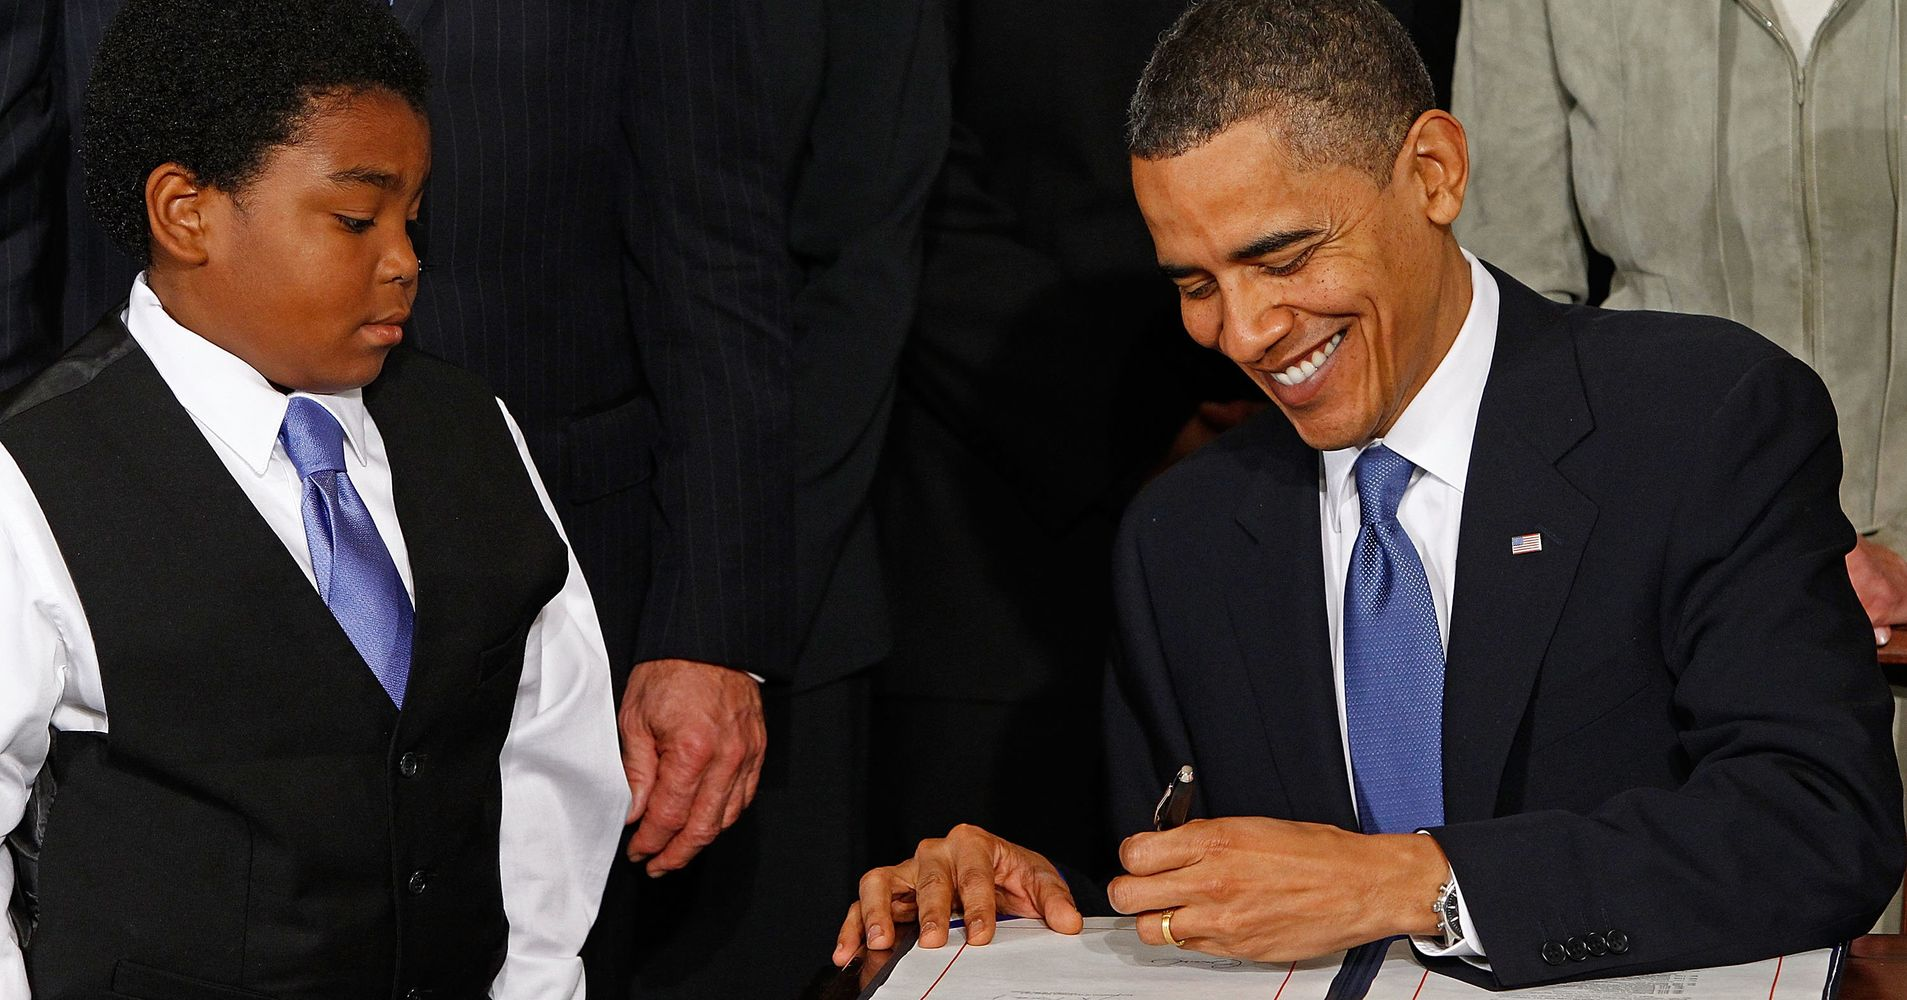 Obamacare Is Alive Because It Has Made Life Better For Millions